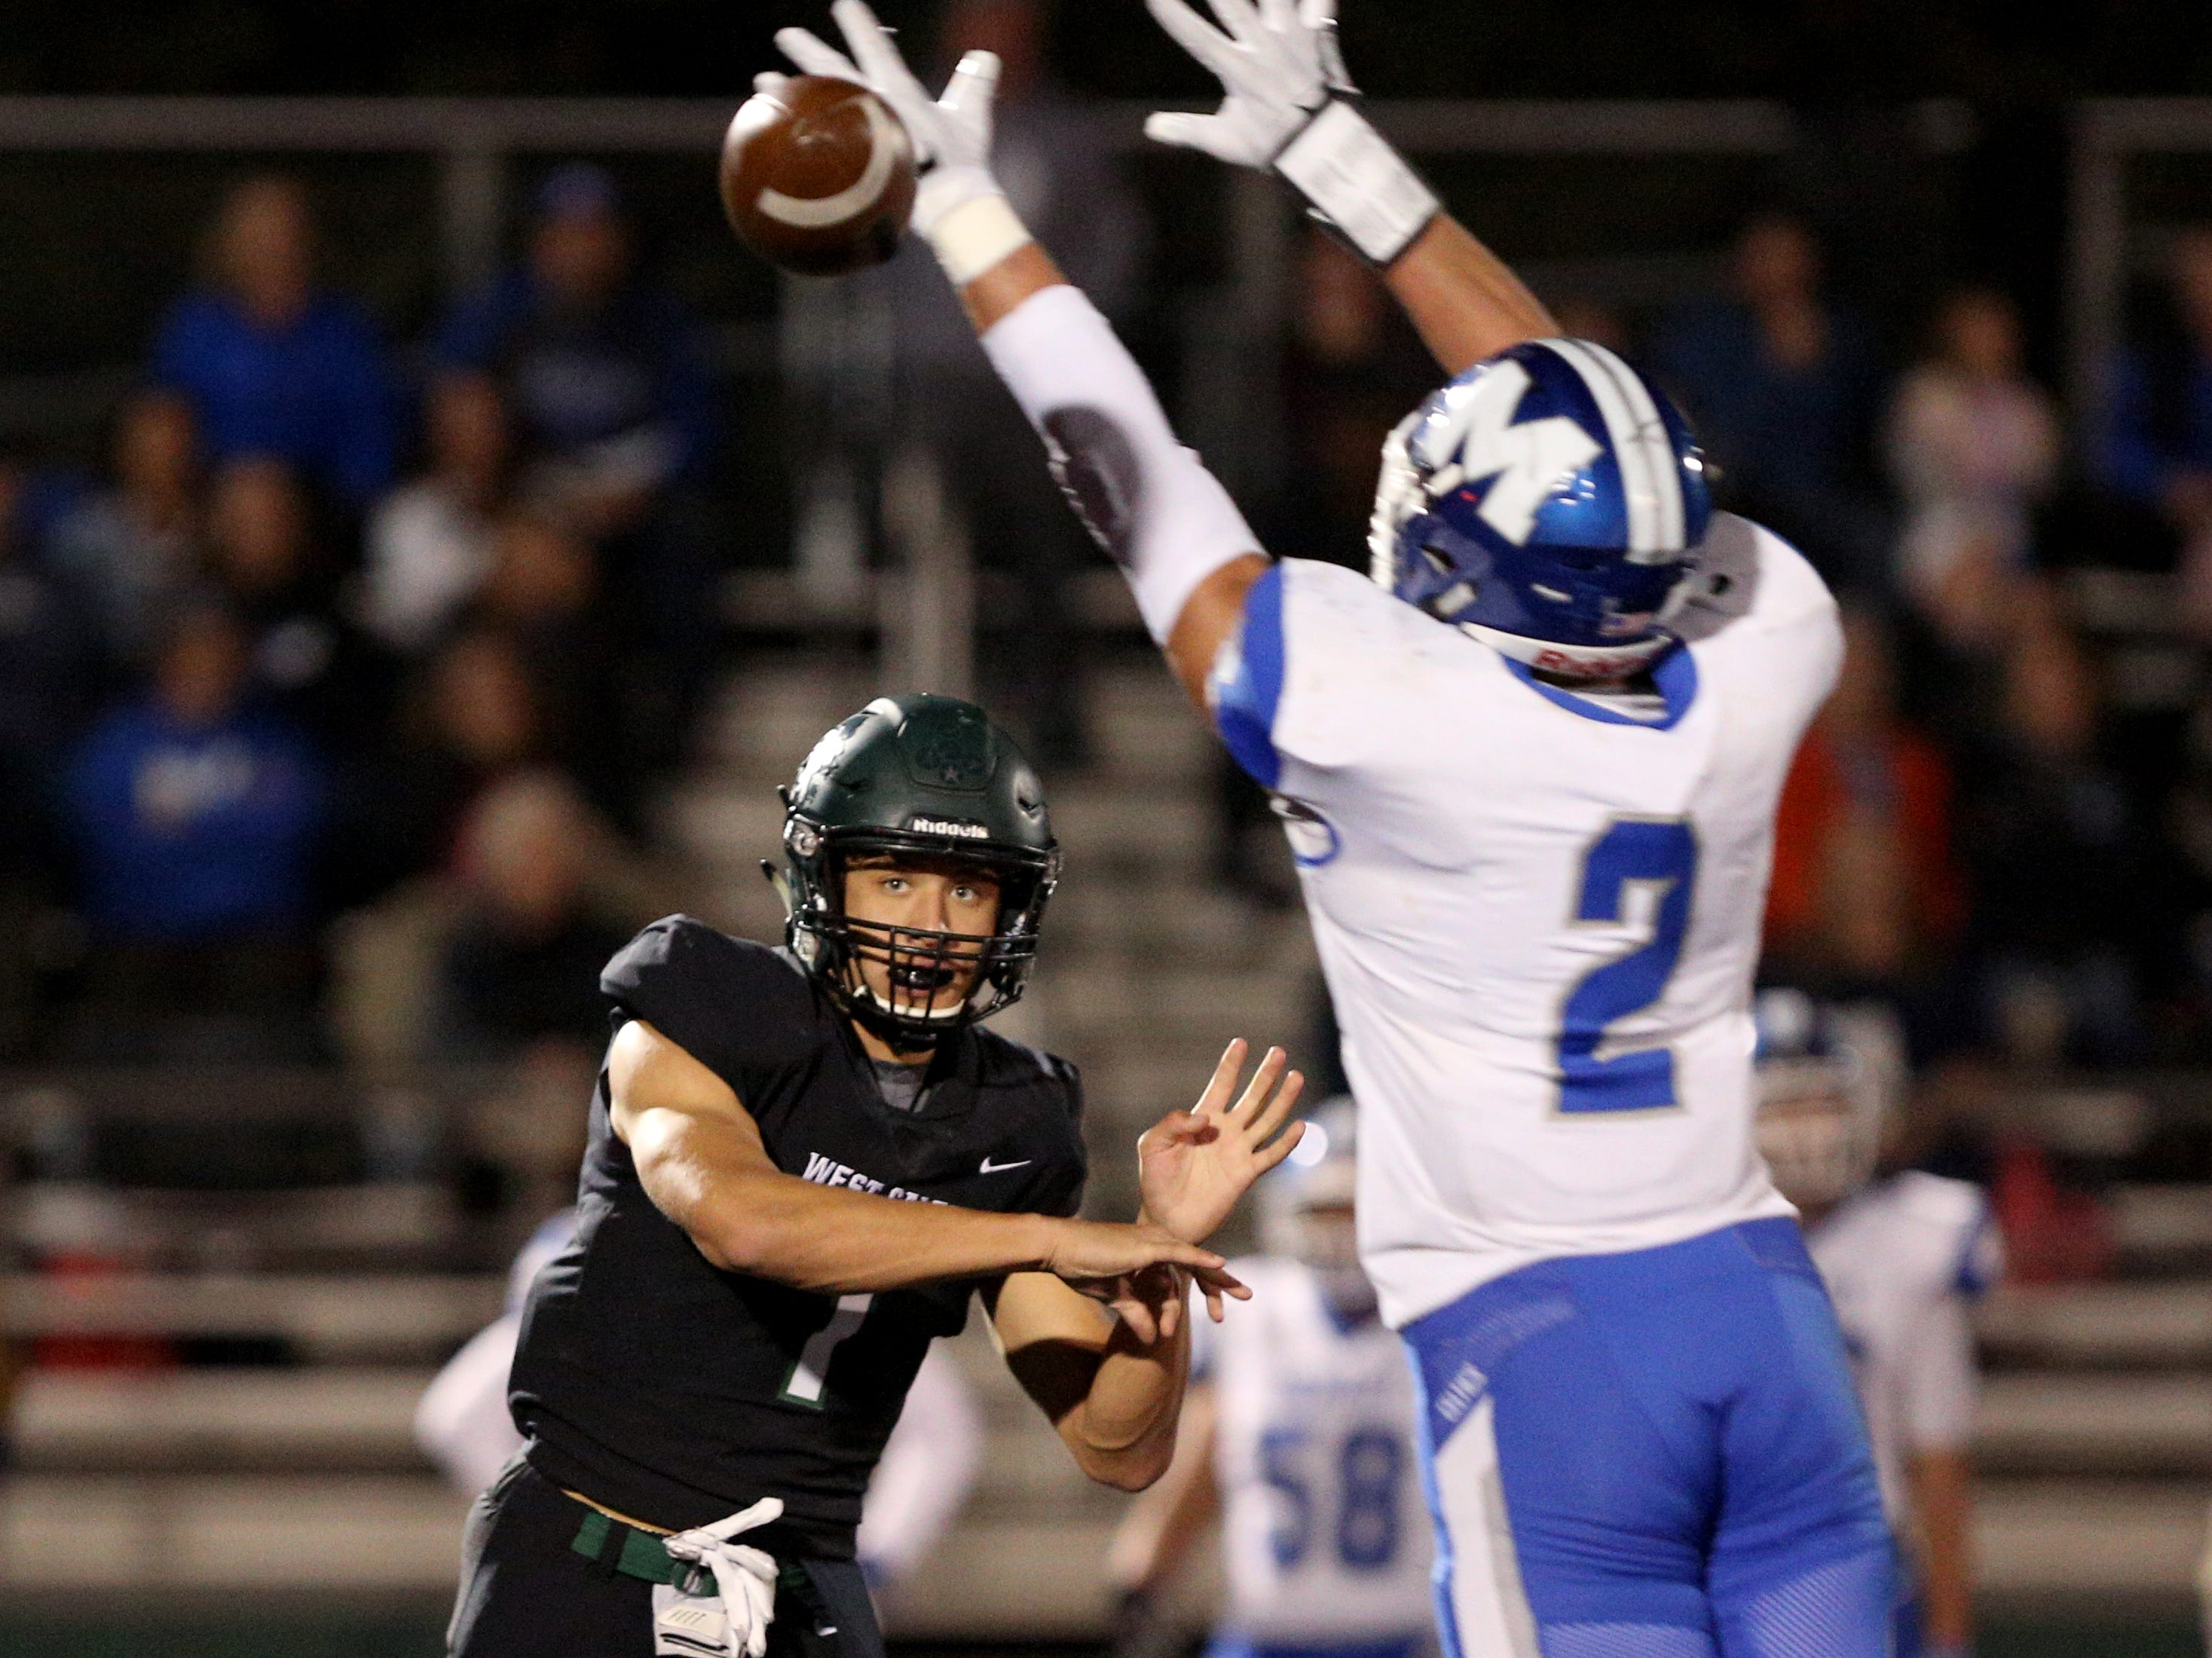 West Salem's Simon Thompson (1) makes a pass across McNary defender Jr. Walling (2) during the first half of the McNary vs. West Salem football game at West Salem High School on Friday, Oct. 19.